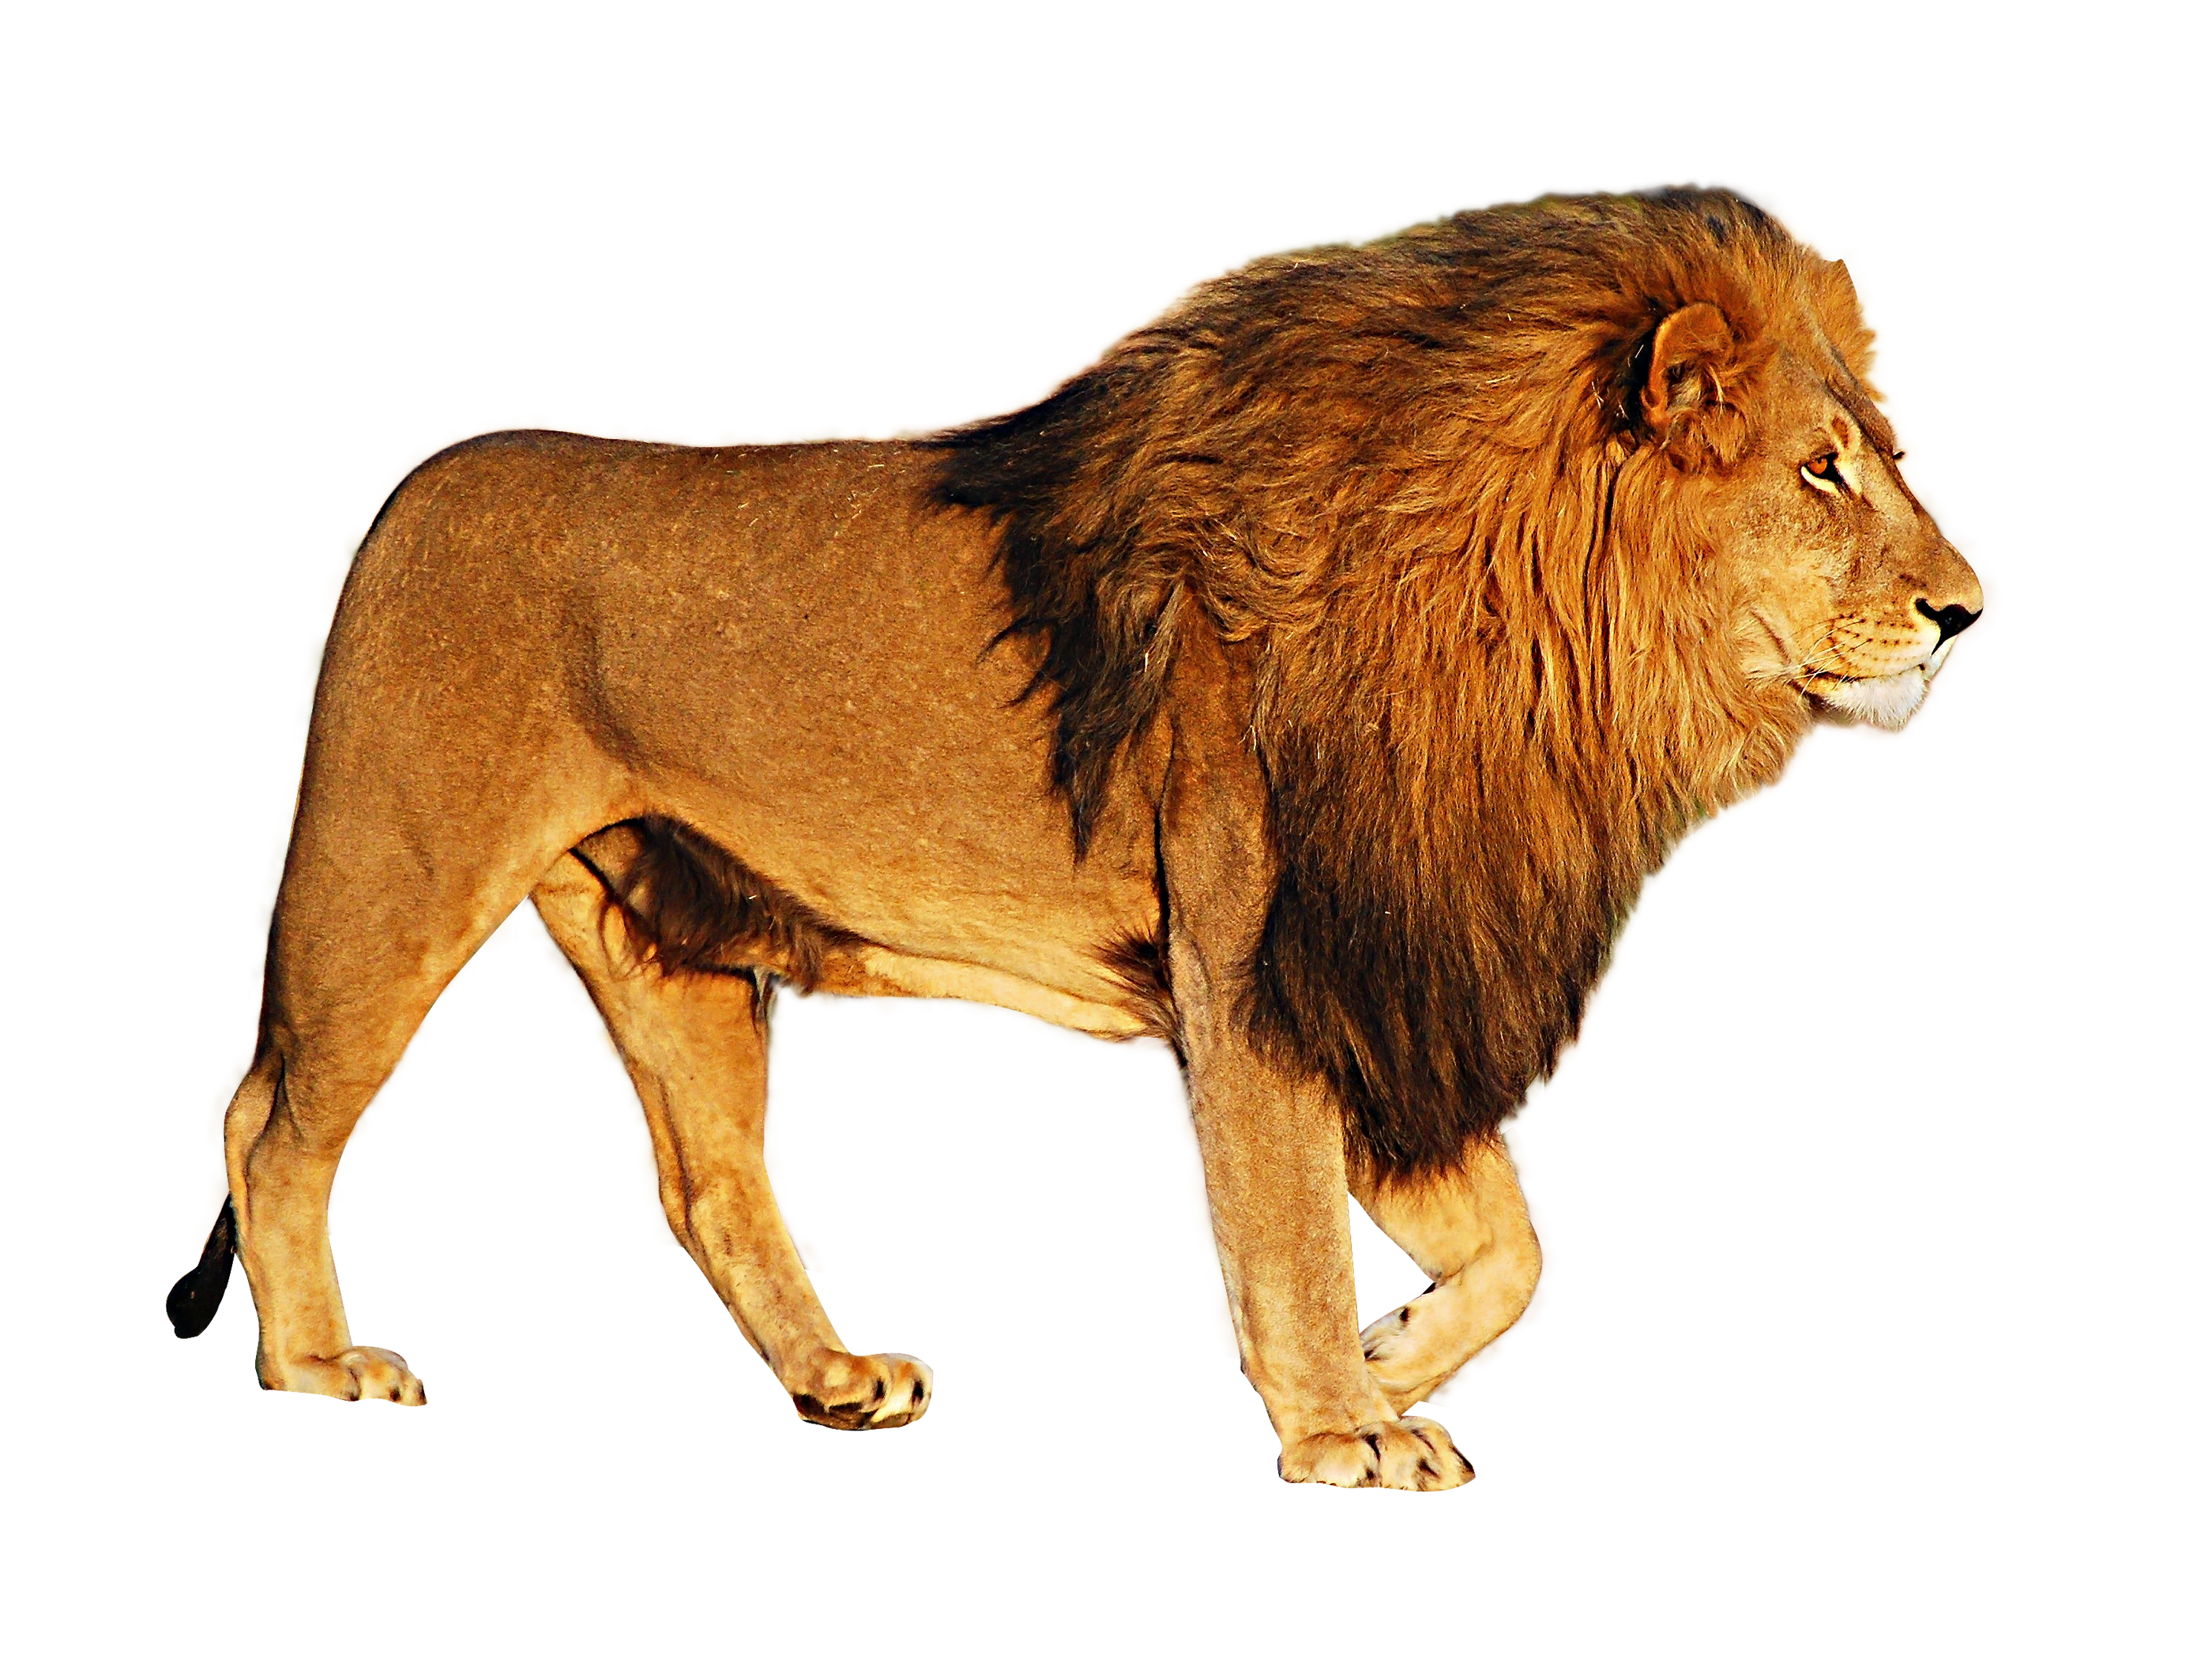 Png images download. Lion free lions